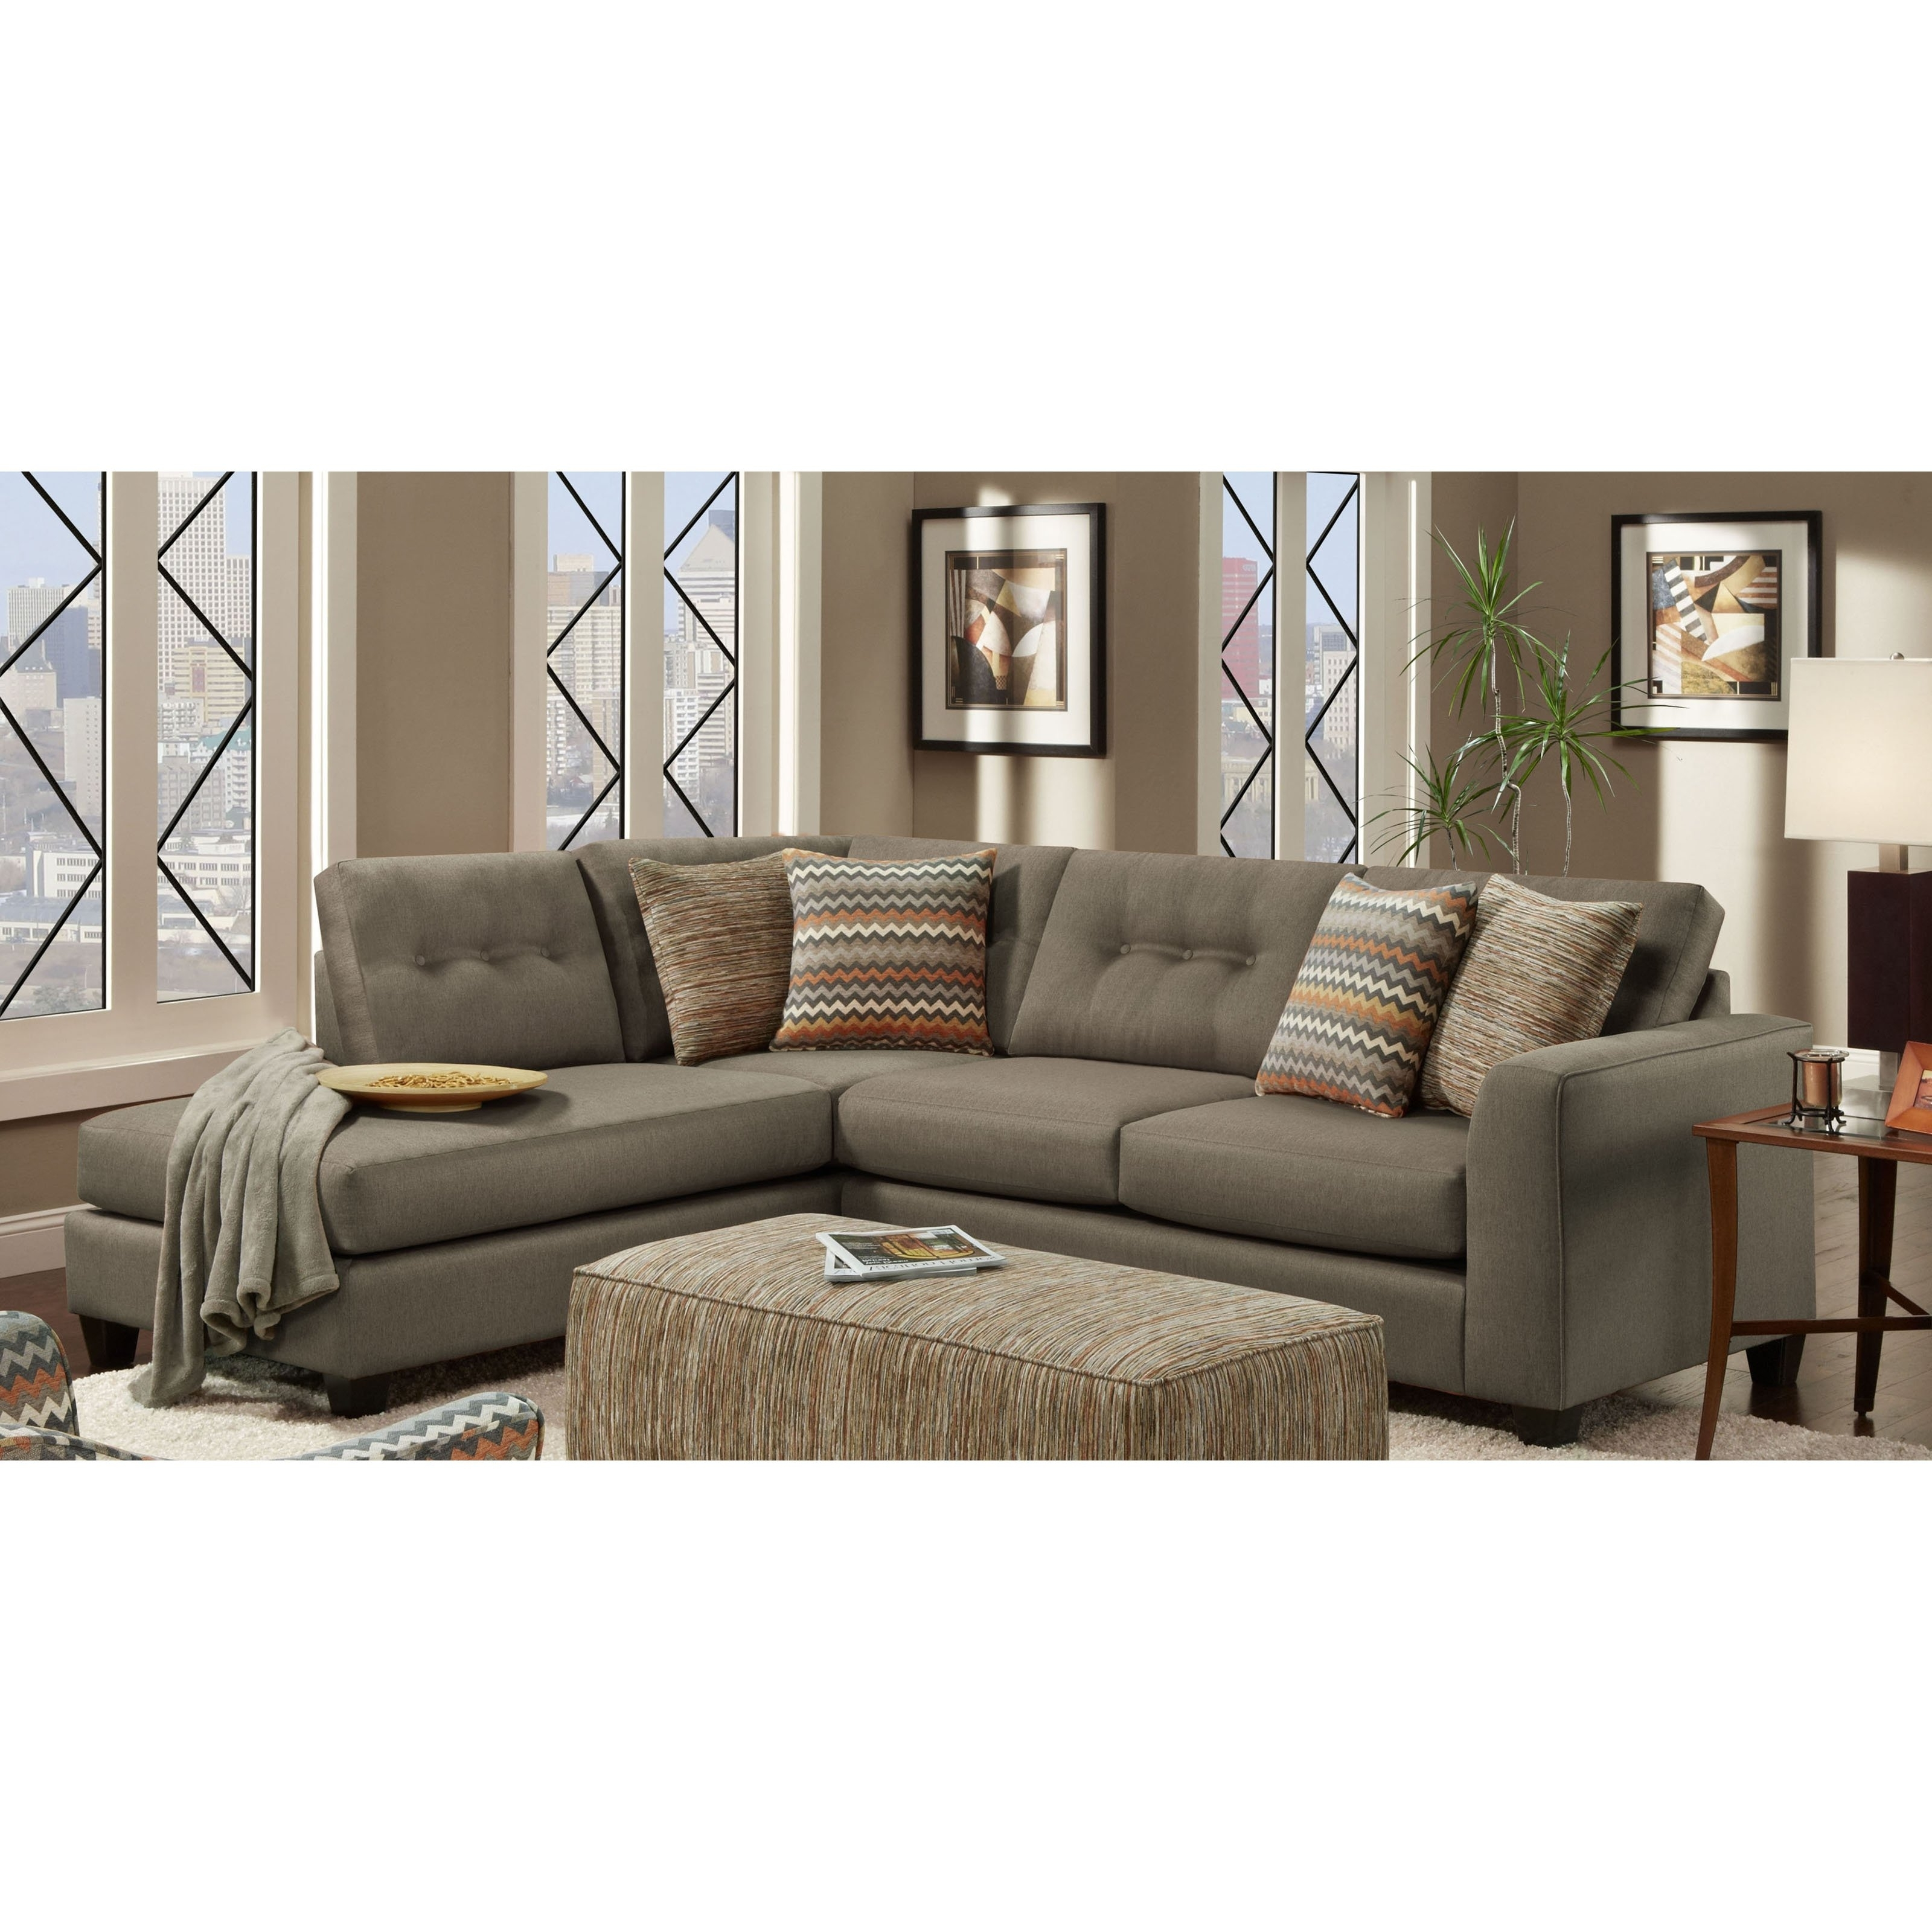 Best And Newest Phoenix Sectional Sofas Regarding Chelsea Home Furniture Phoenix Sectional Sofa – Walmart (View 5 of 15)